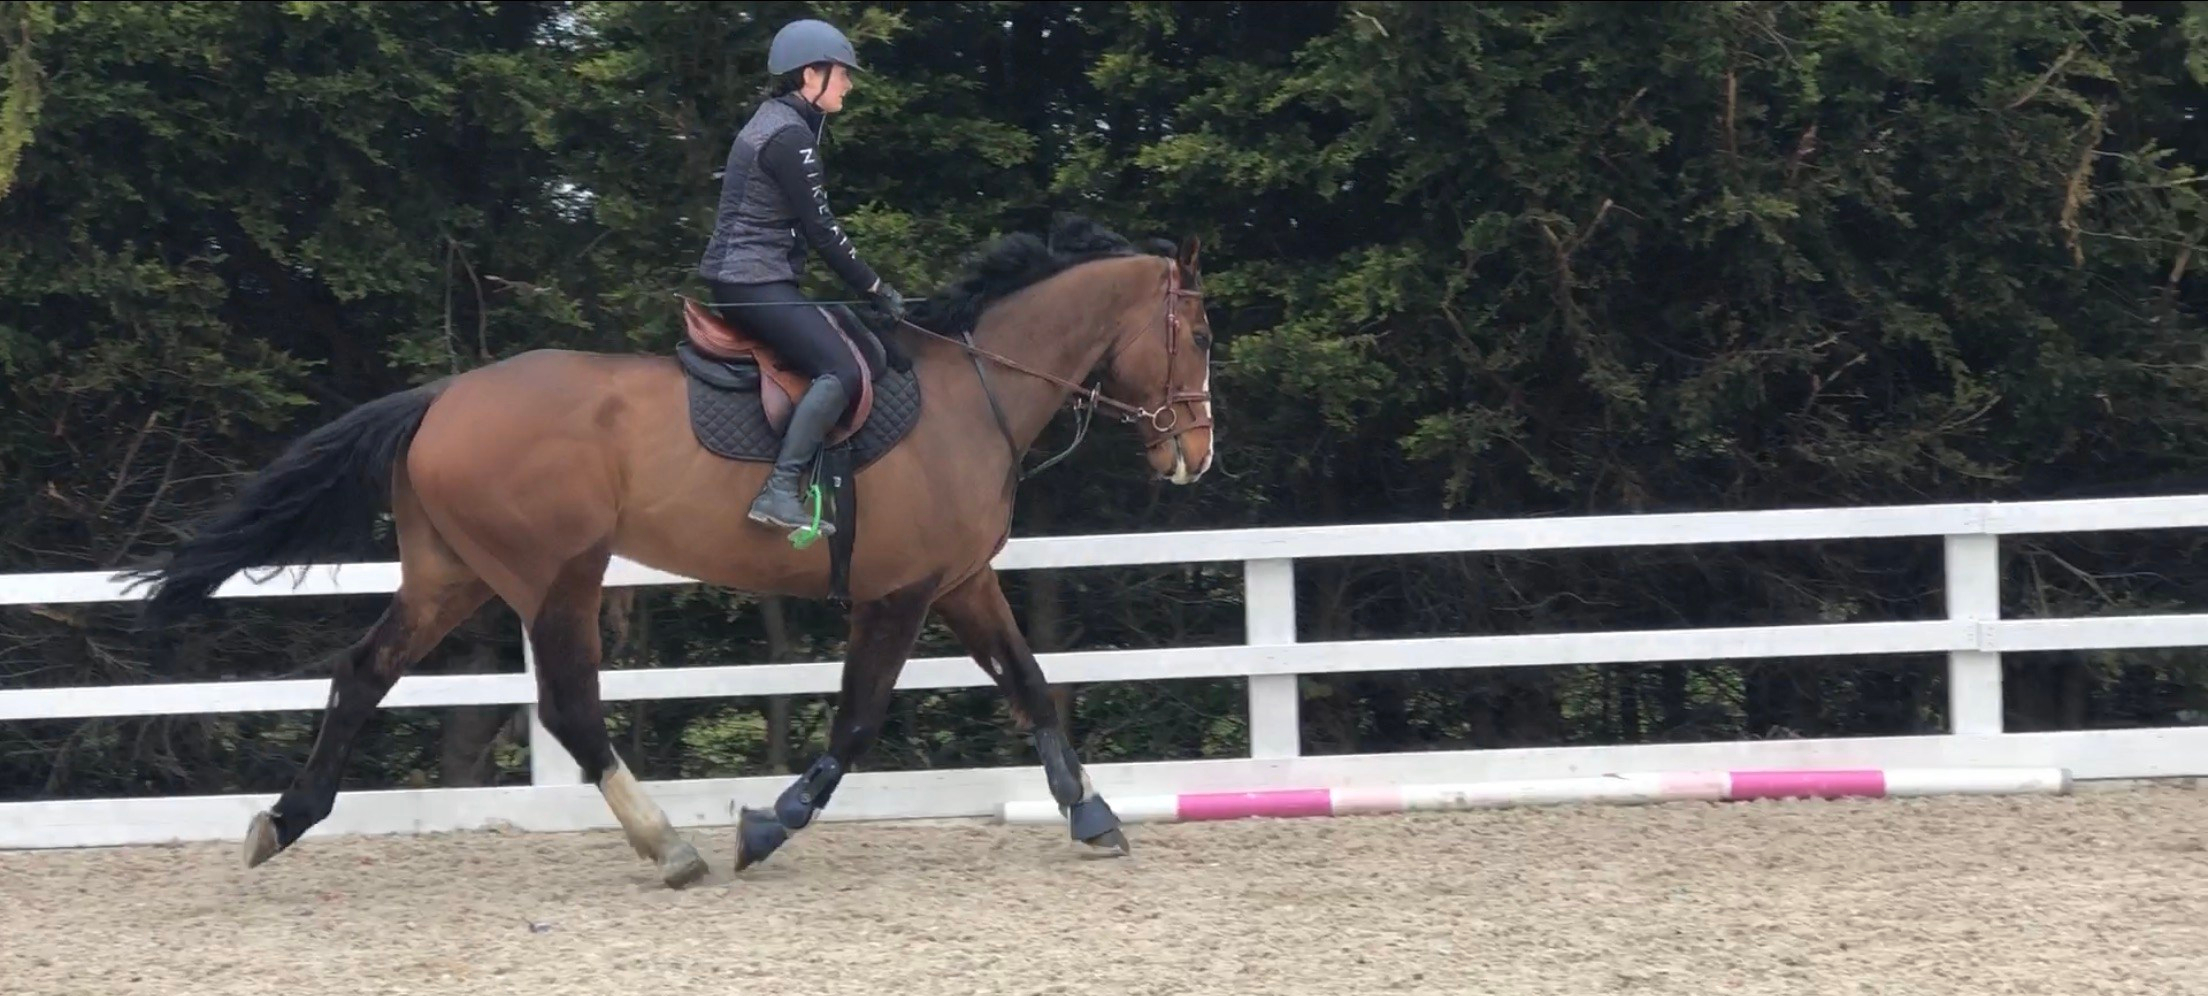 Small Fixes With Big Results 8 Tips To Improve My Jumping No Bucking Way